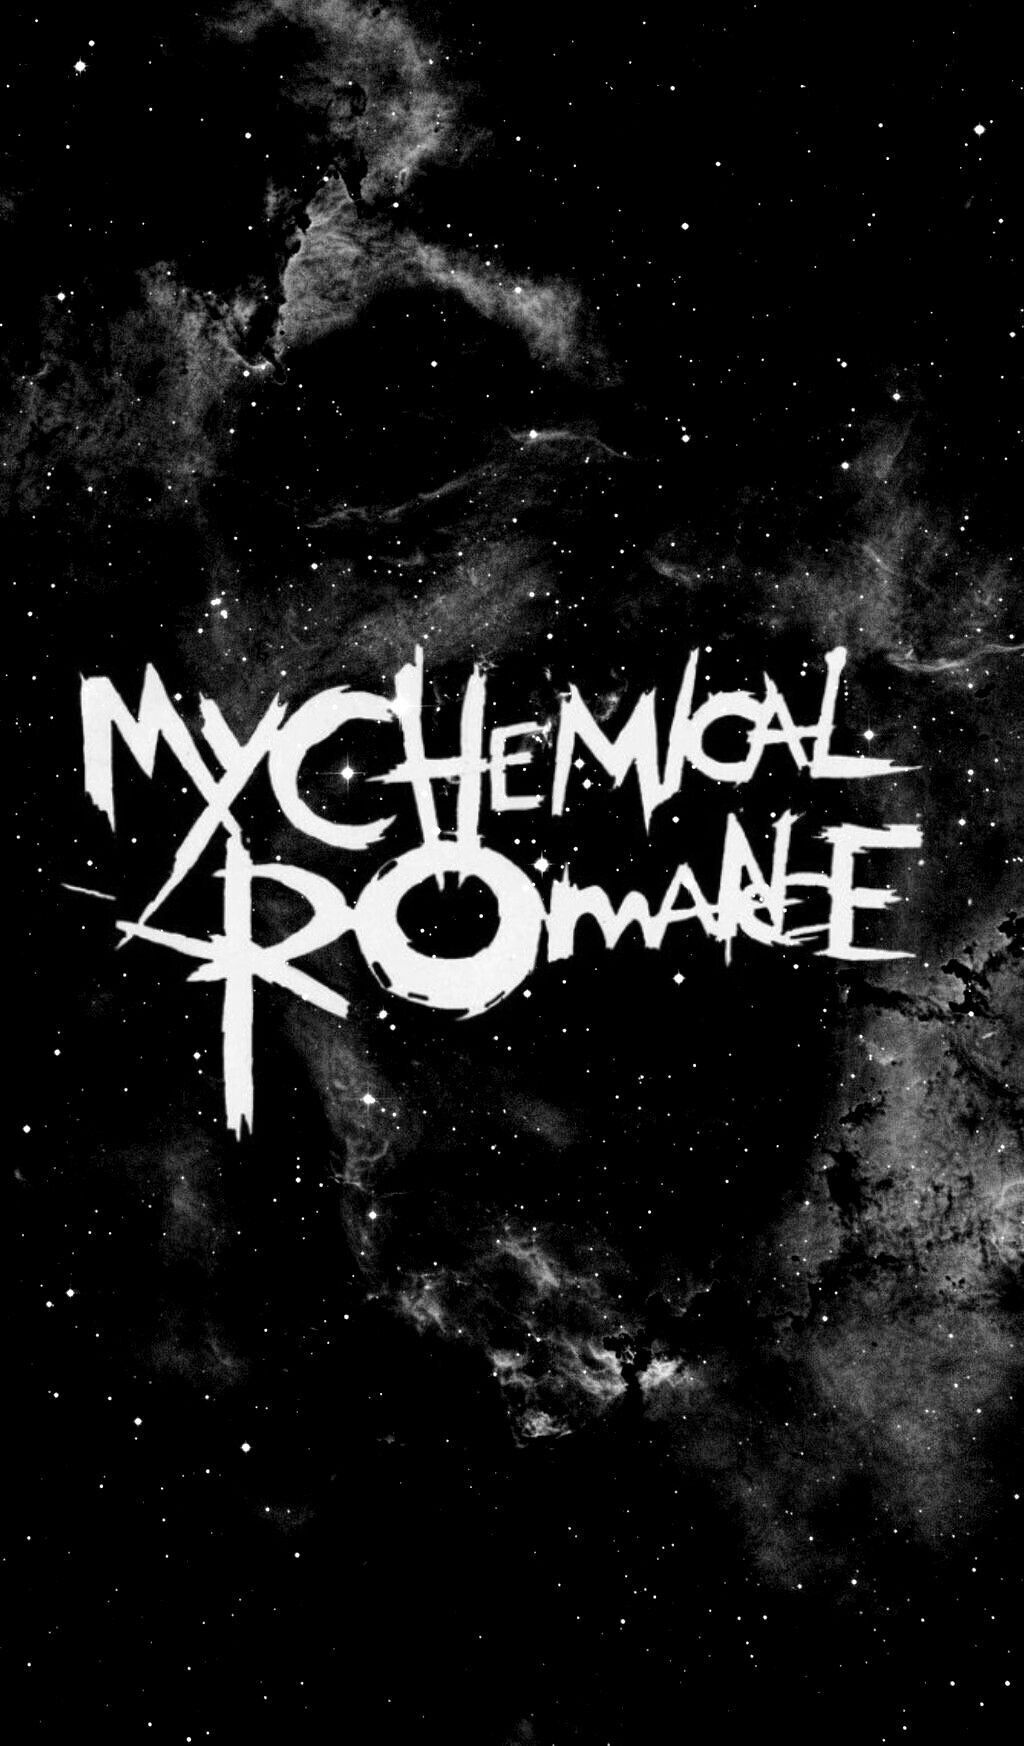 Mcr Wallpaper Google Search My Chemical Romance Wallpaper Emo